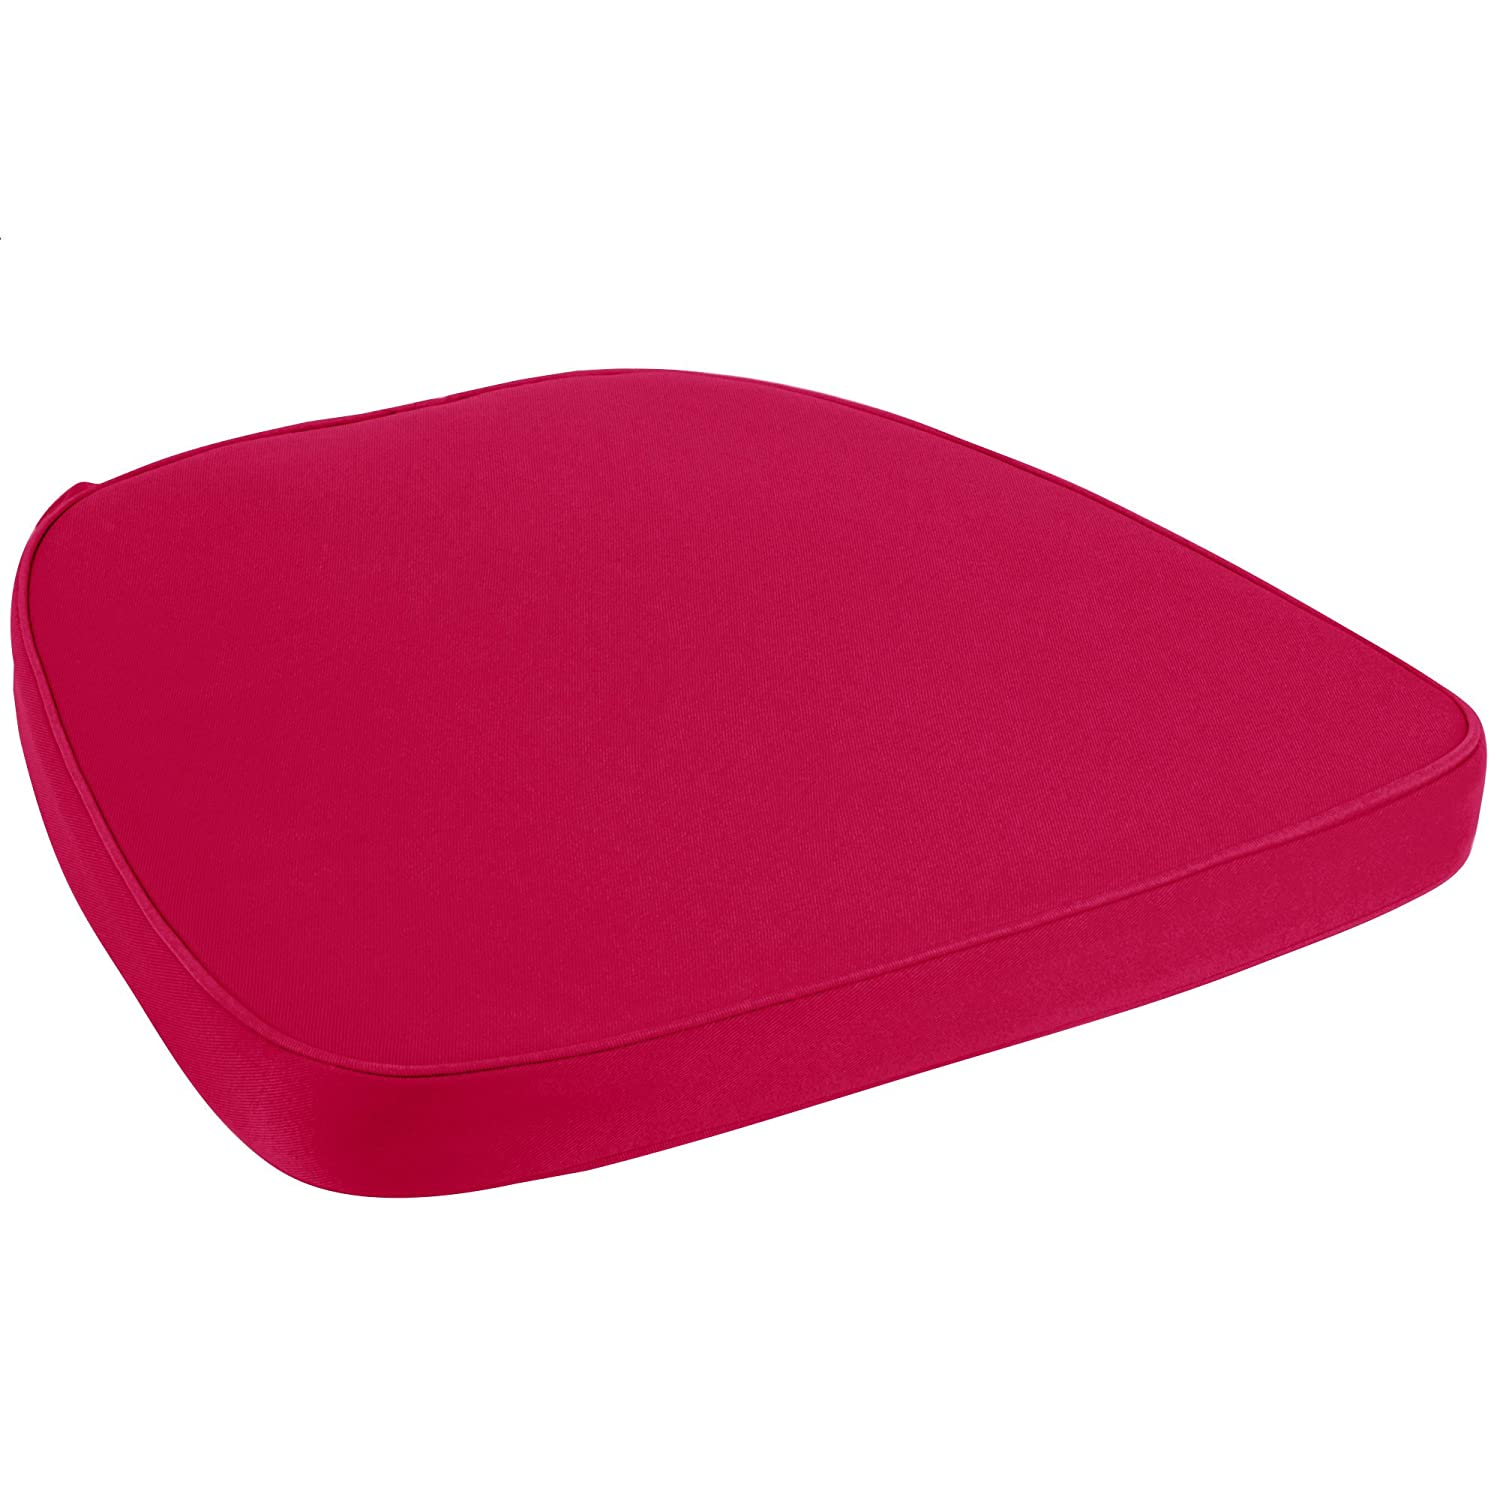 Yanel Red Chair Pad | Seat Padded Cushion |Polycore Thread Soft Fabric, Straps and Removable Zippered Cover